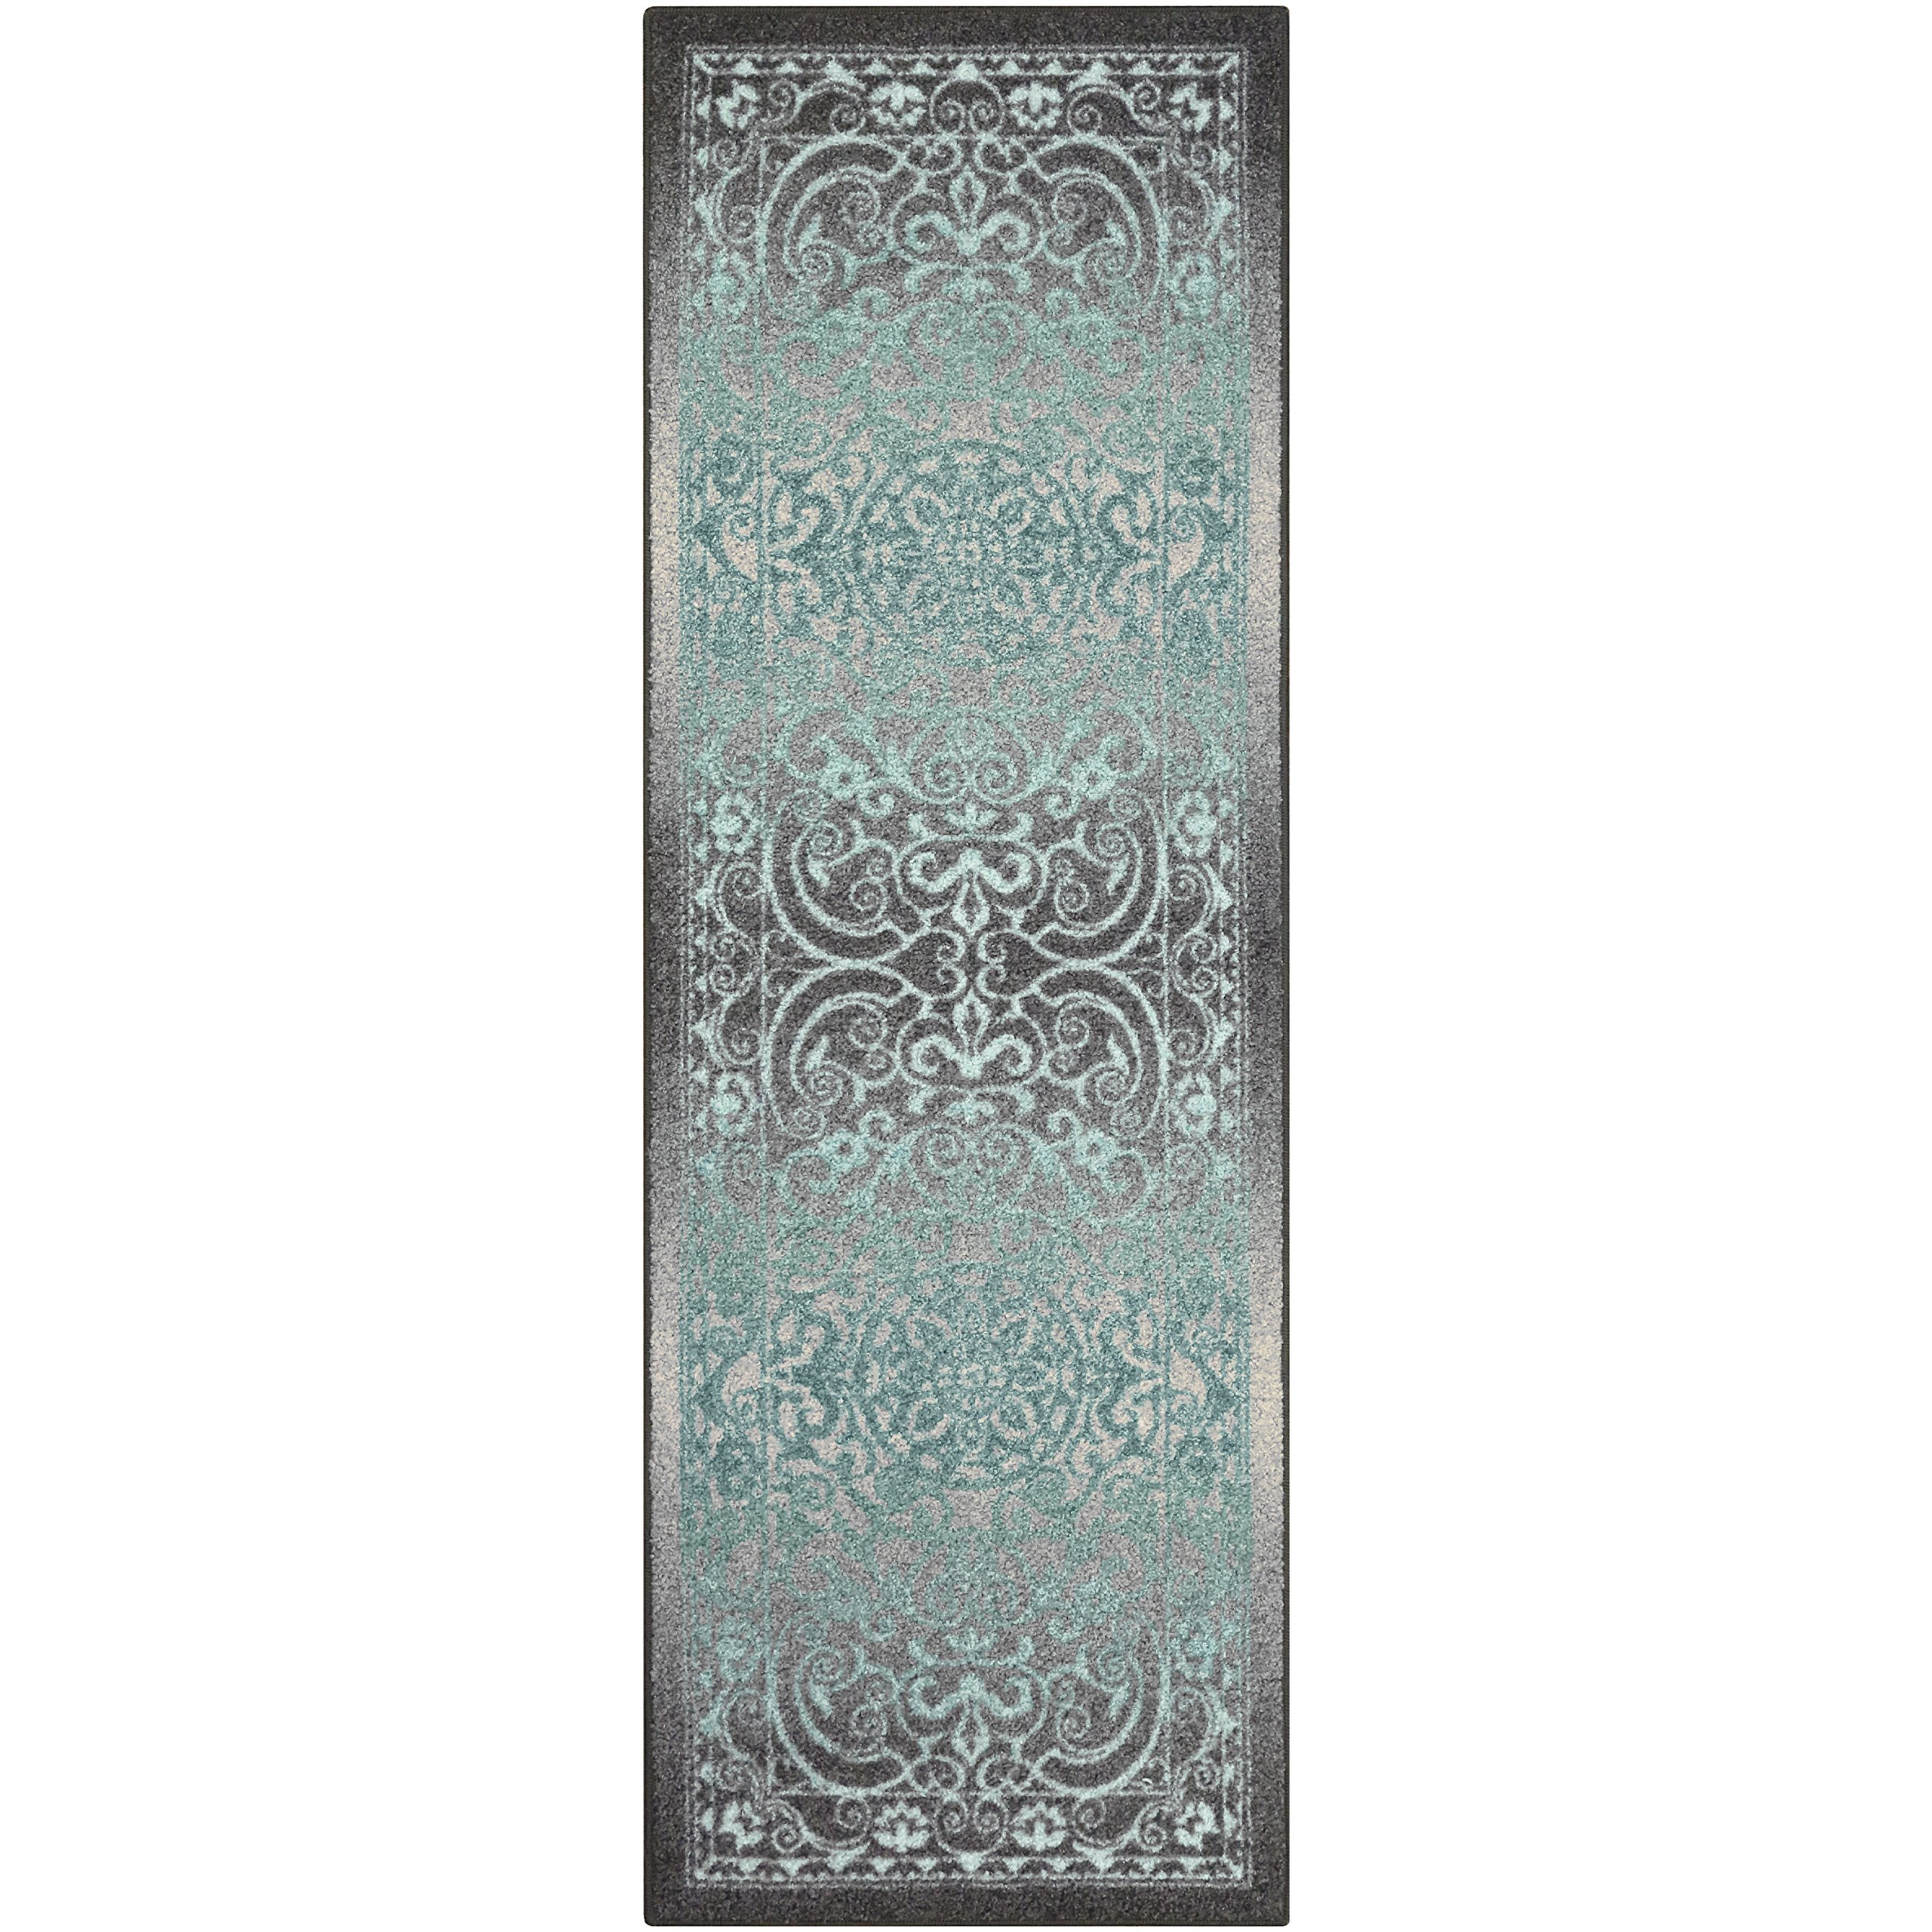 Maples Rugs Runner Pelham Non Skid Hallway For Kitchen And Entryway